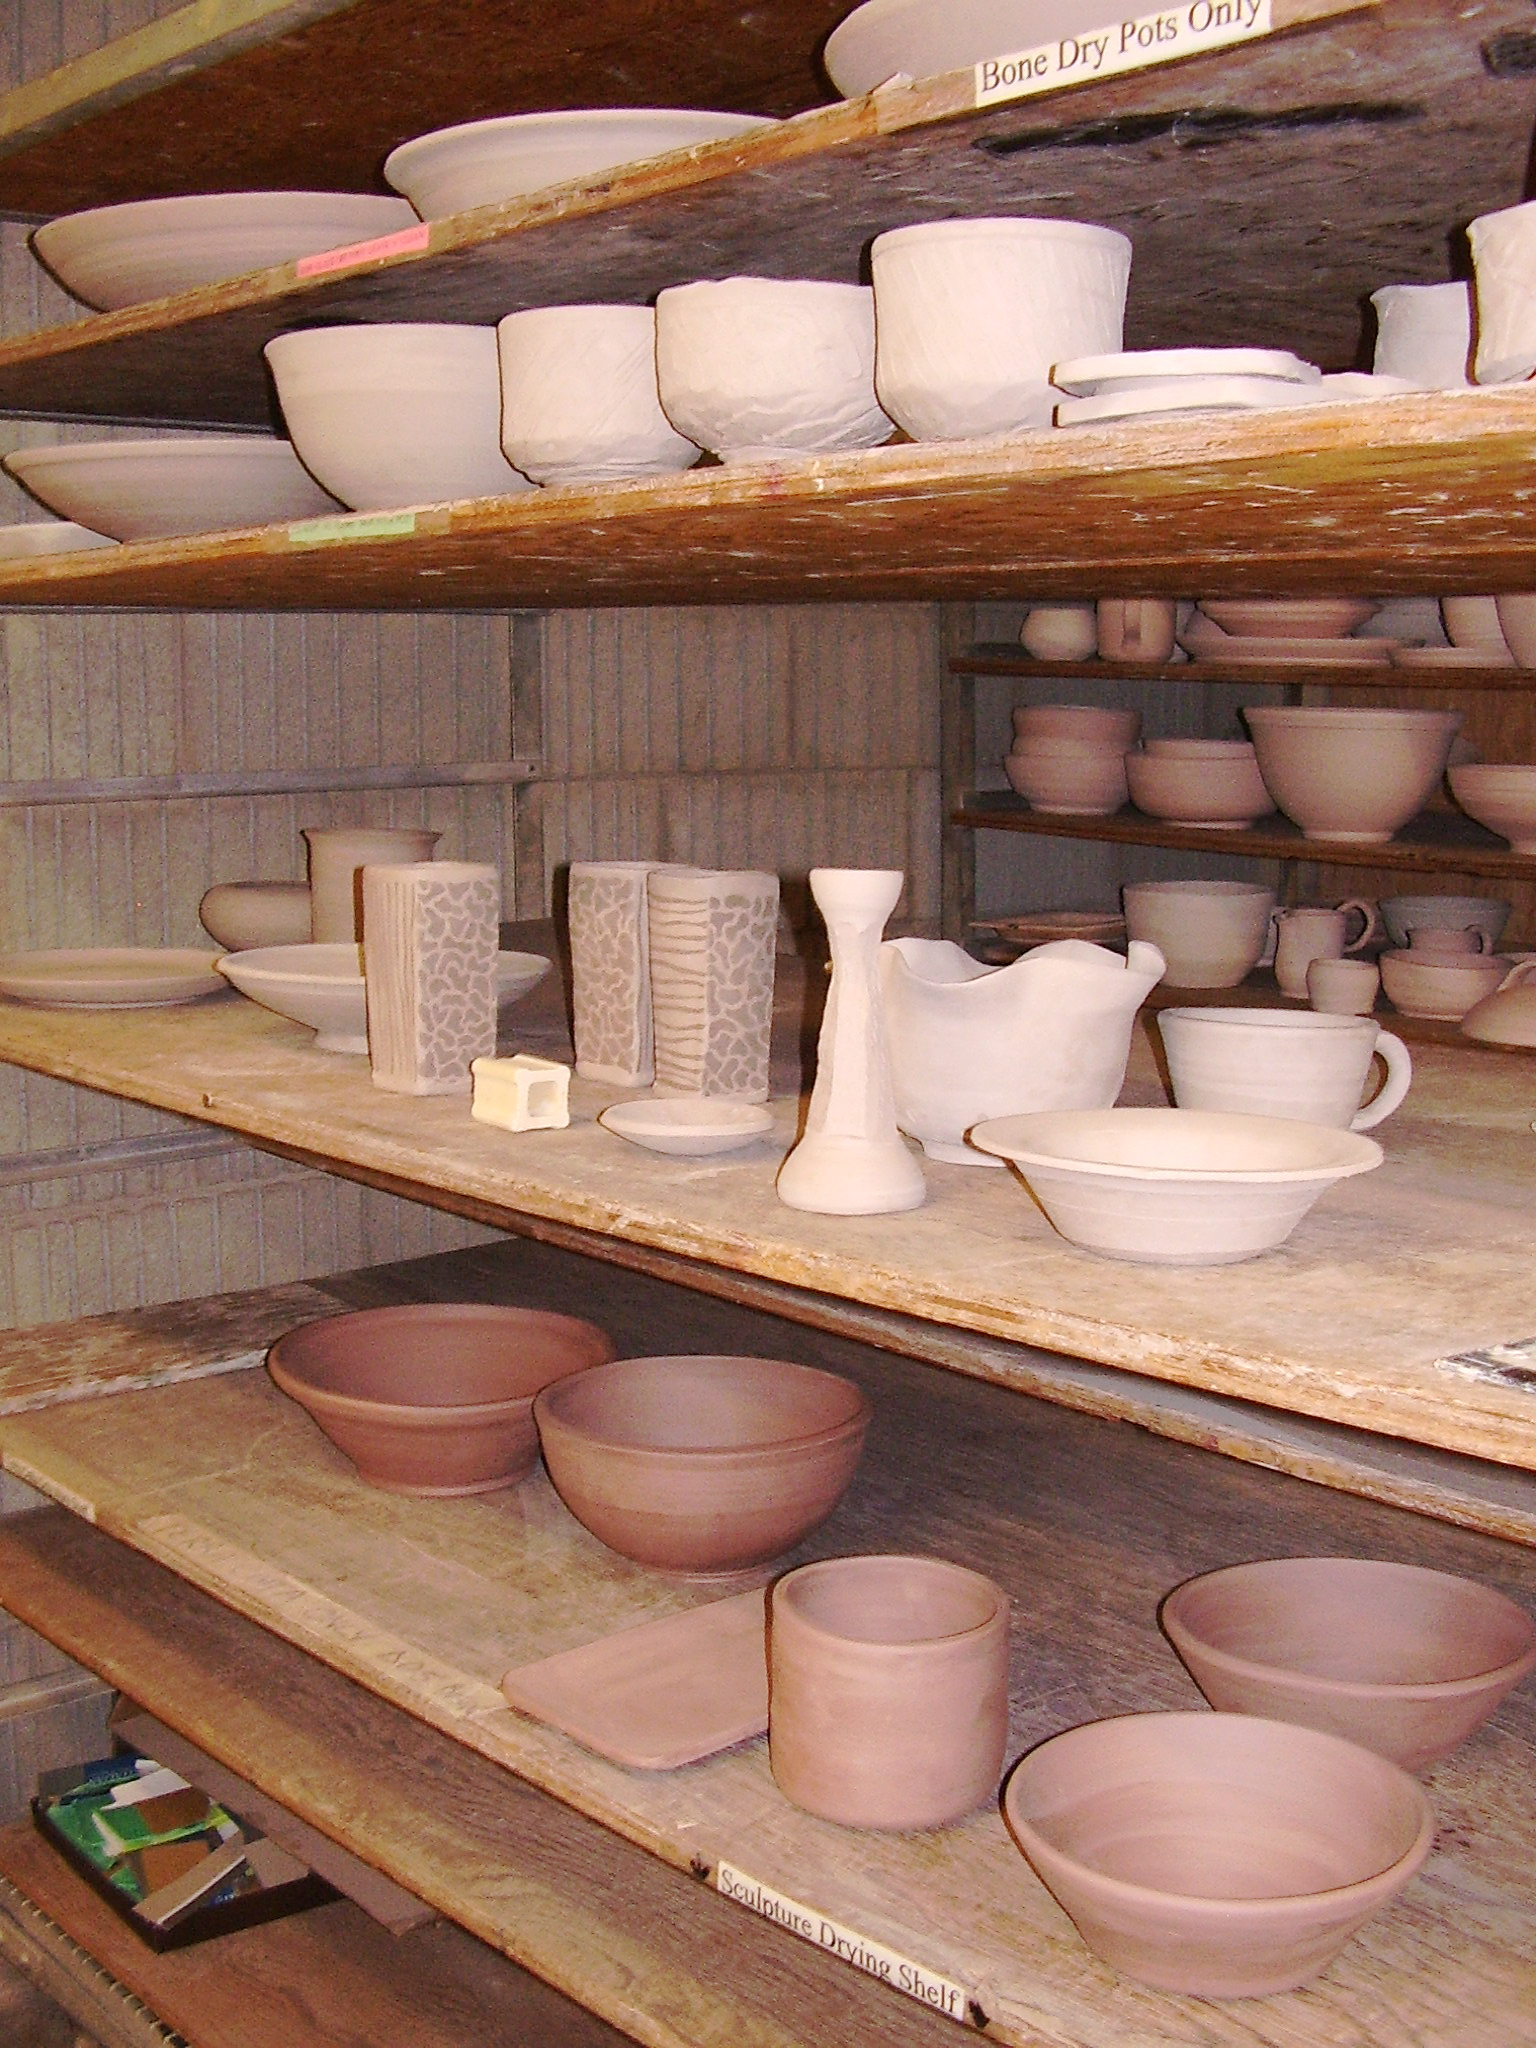 Drying Cabinet For Pottery Studio ~ Workflow caw pottery